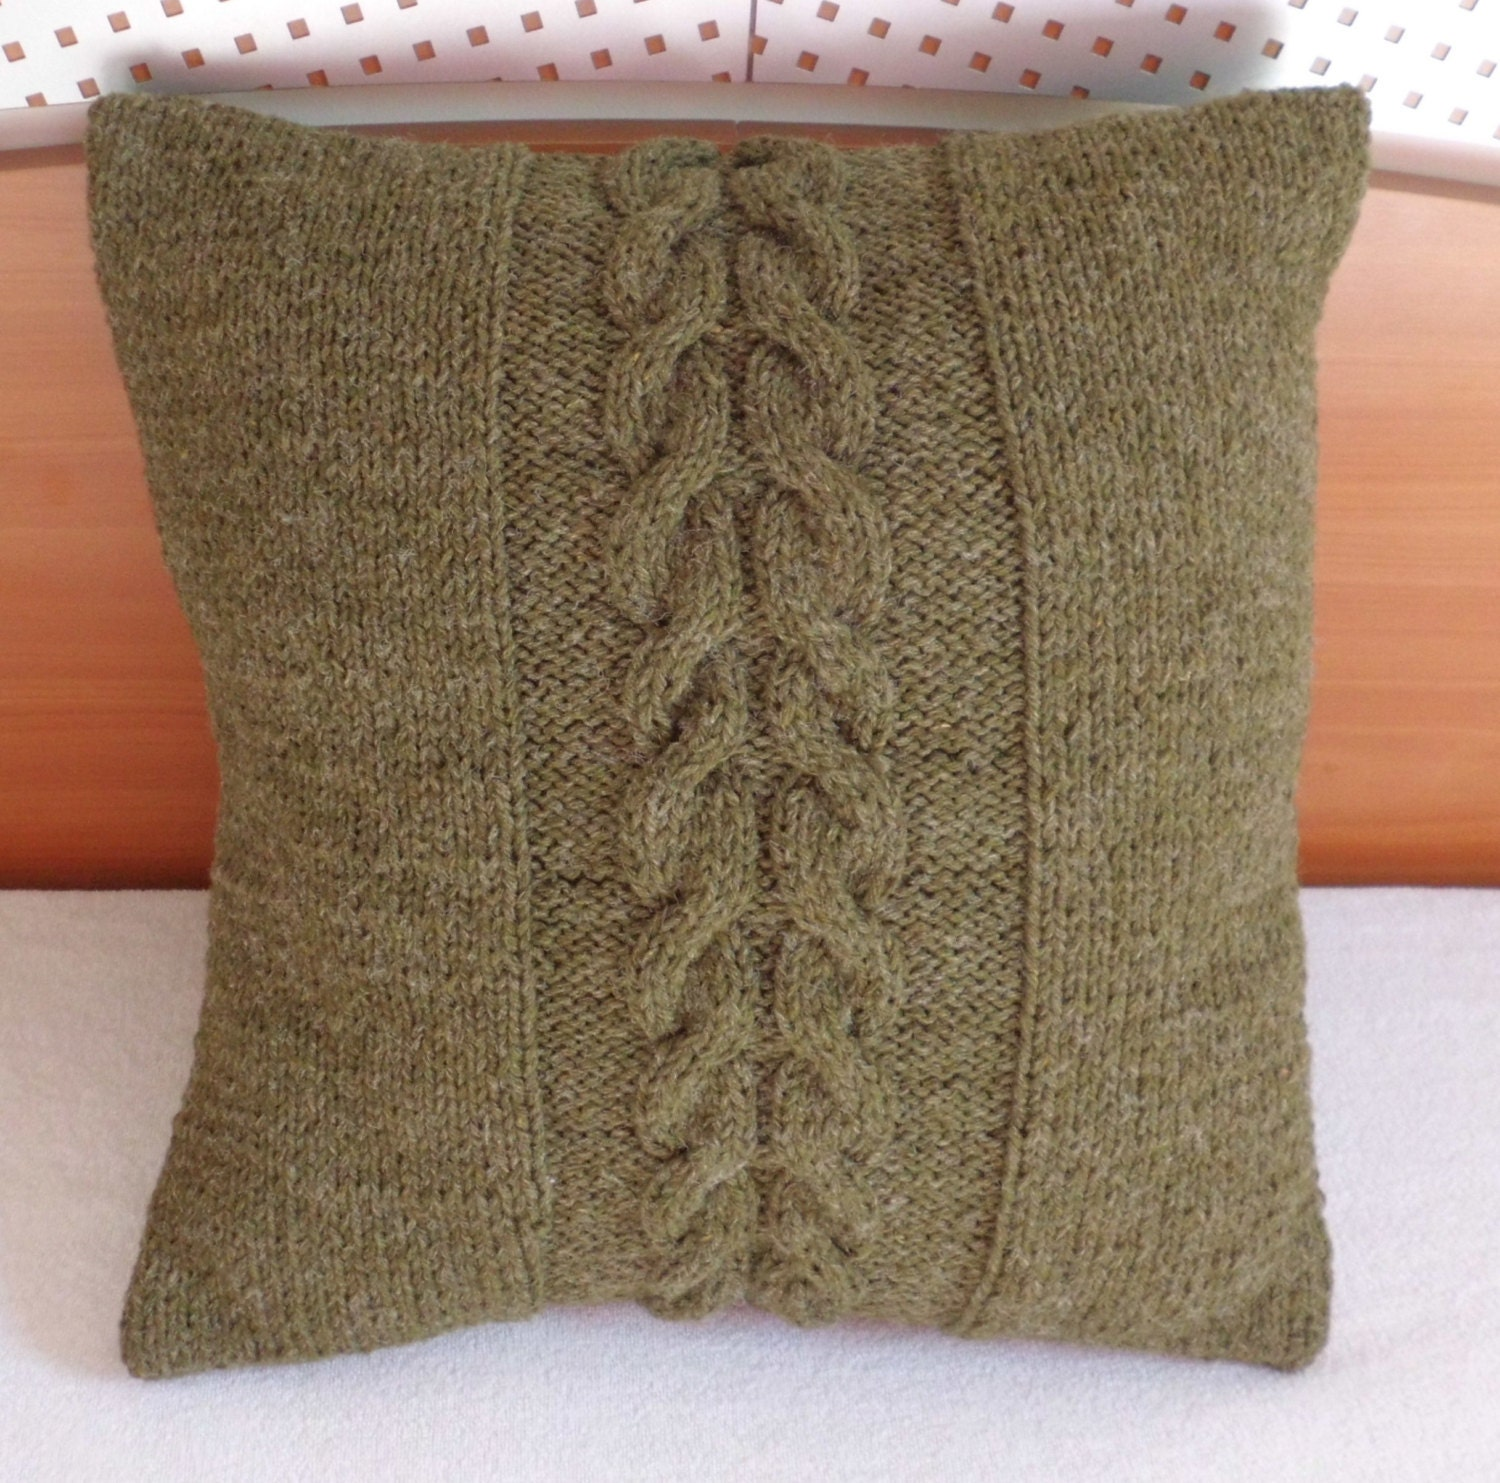 Olive 14x14 hand knitted cushion brown knit couch by Adorablewares